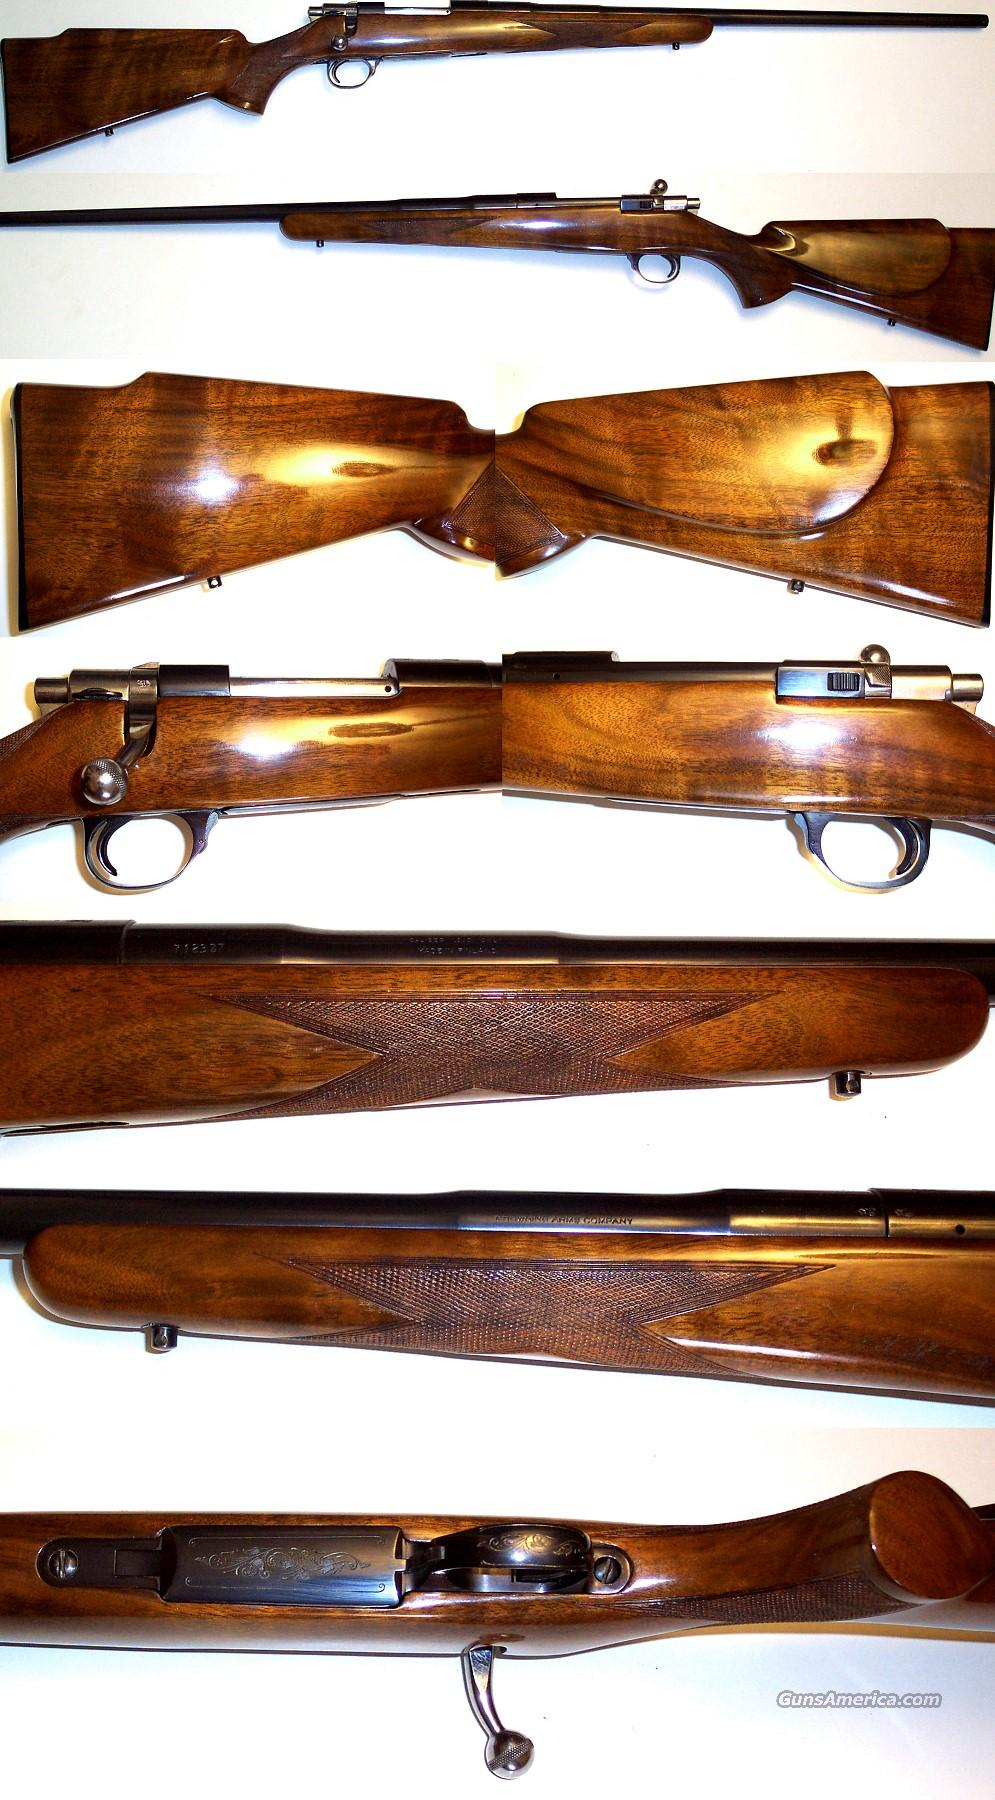 Browning Safari Grade 243 bolt action exc cond  Guns > Rifles > Browning Rifles > Bolt Action > Hunting > Blue